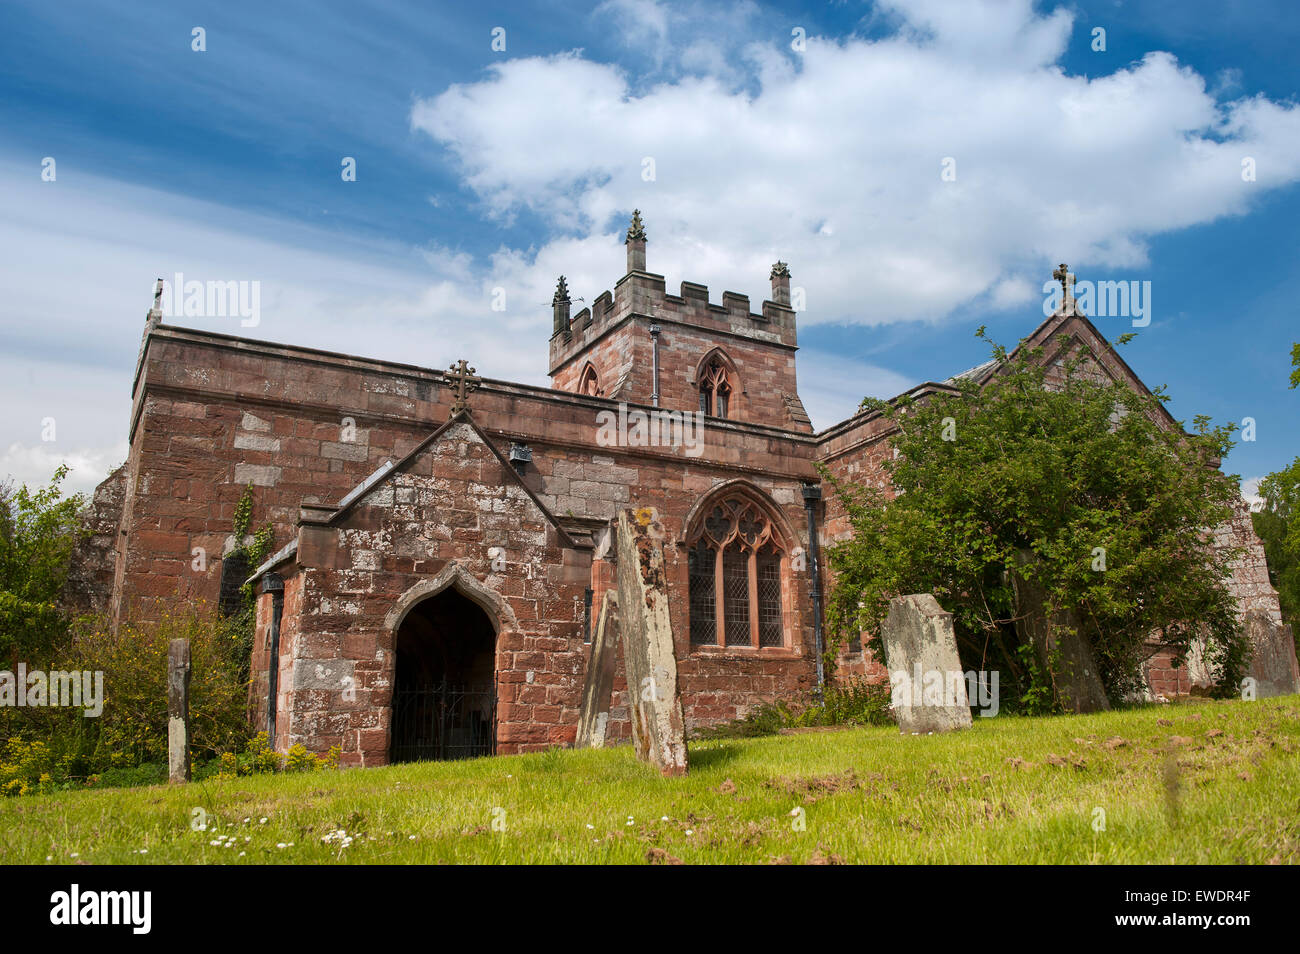 12c Church of Saint Michael in the Sands area of Appleby in Westmorland, UK. - Stock Image